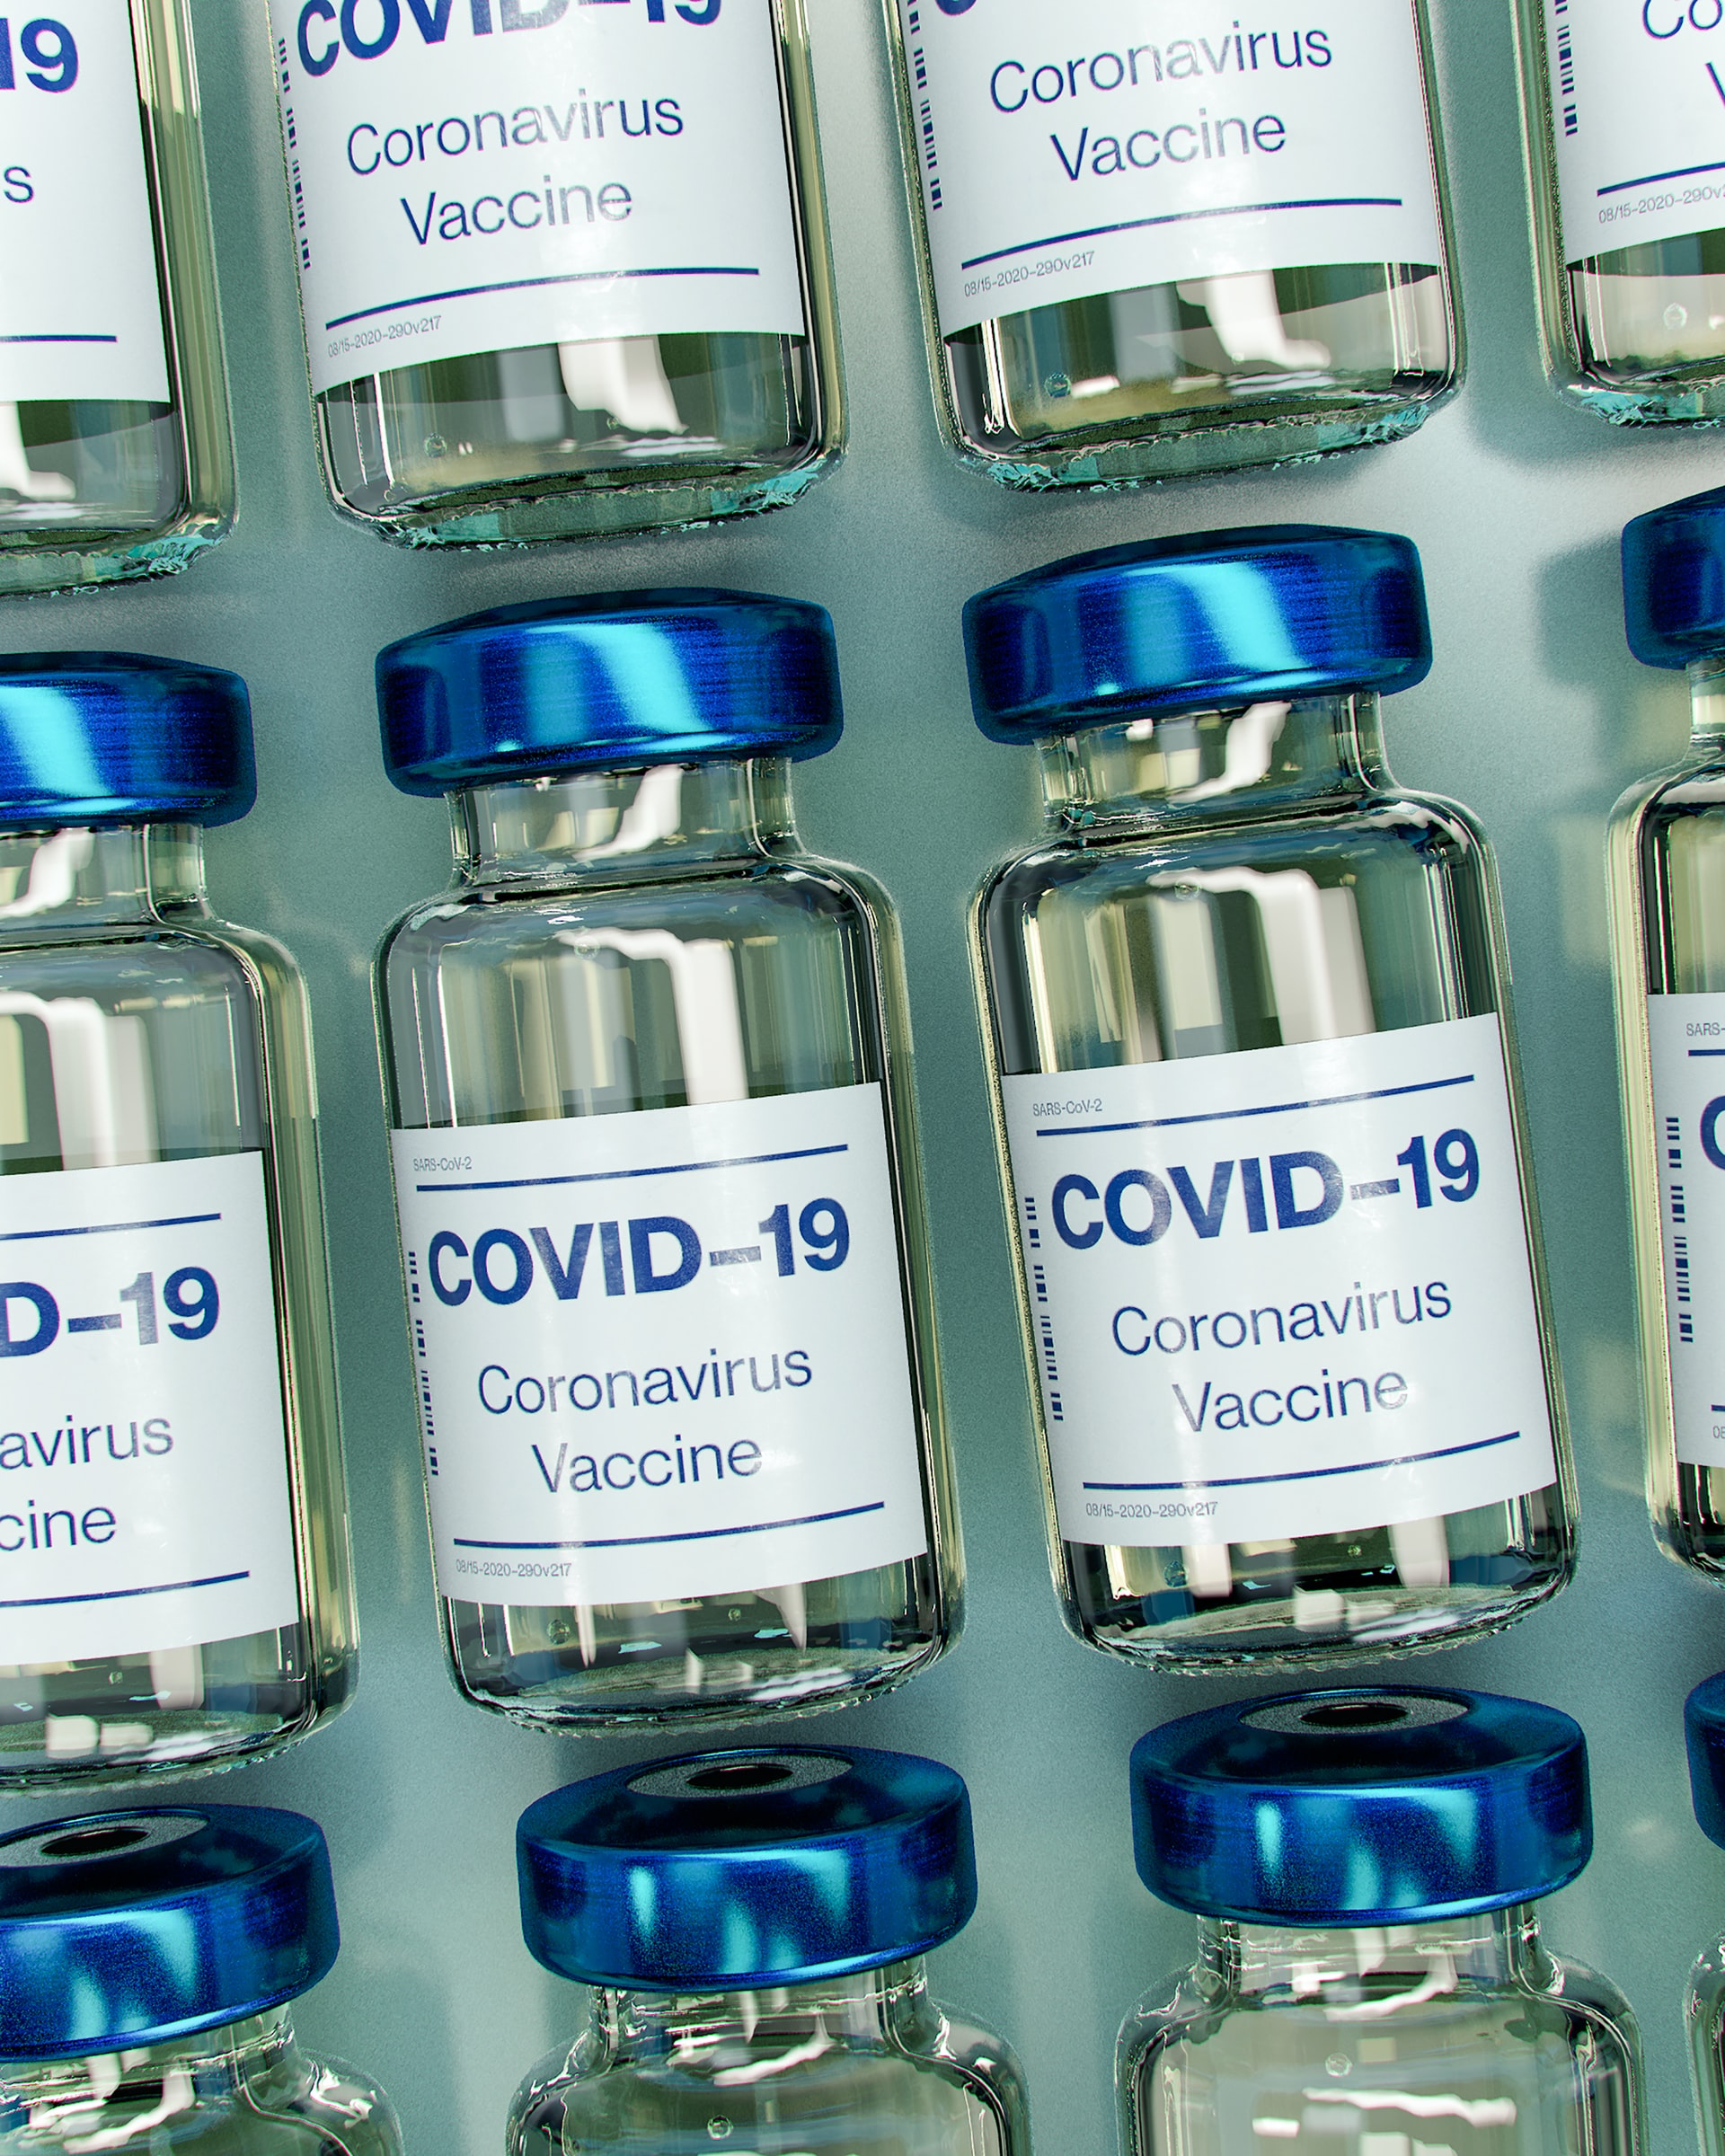 COVID-19 vaccine bottle mockup (does not depict actual vaccine)